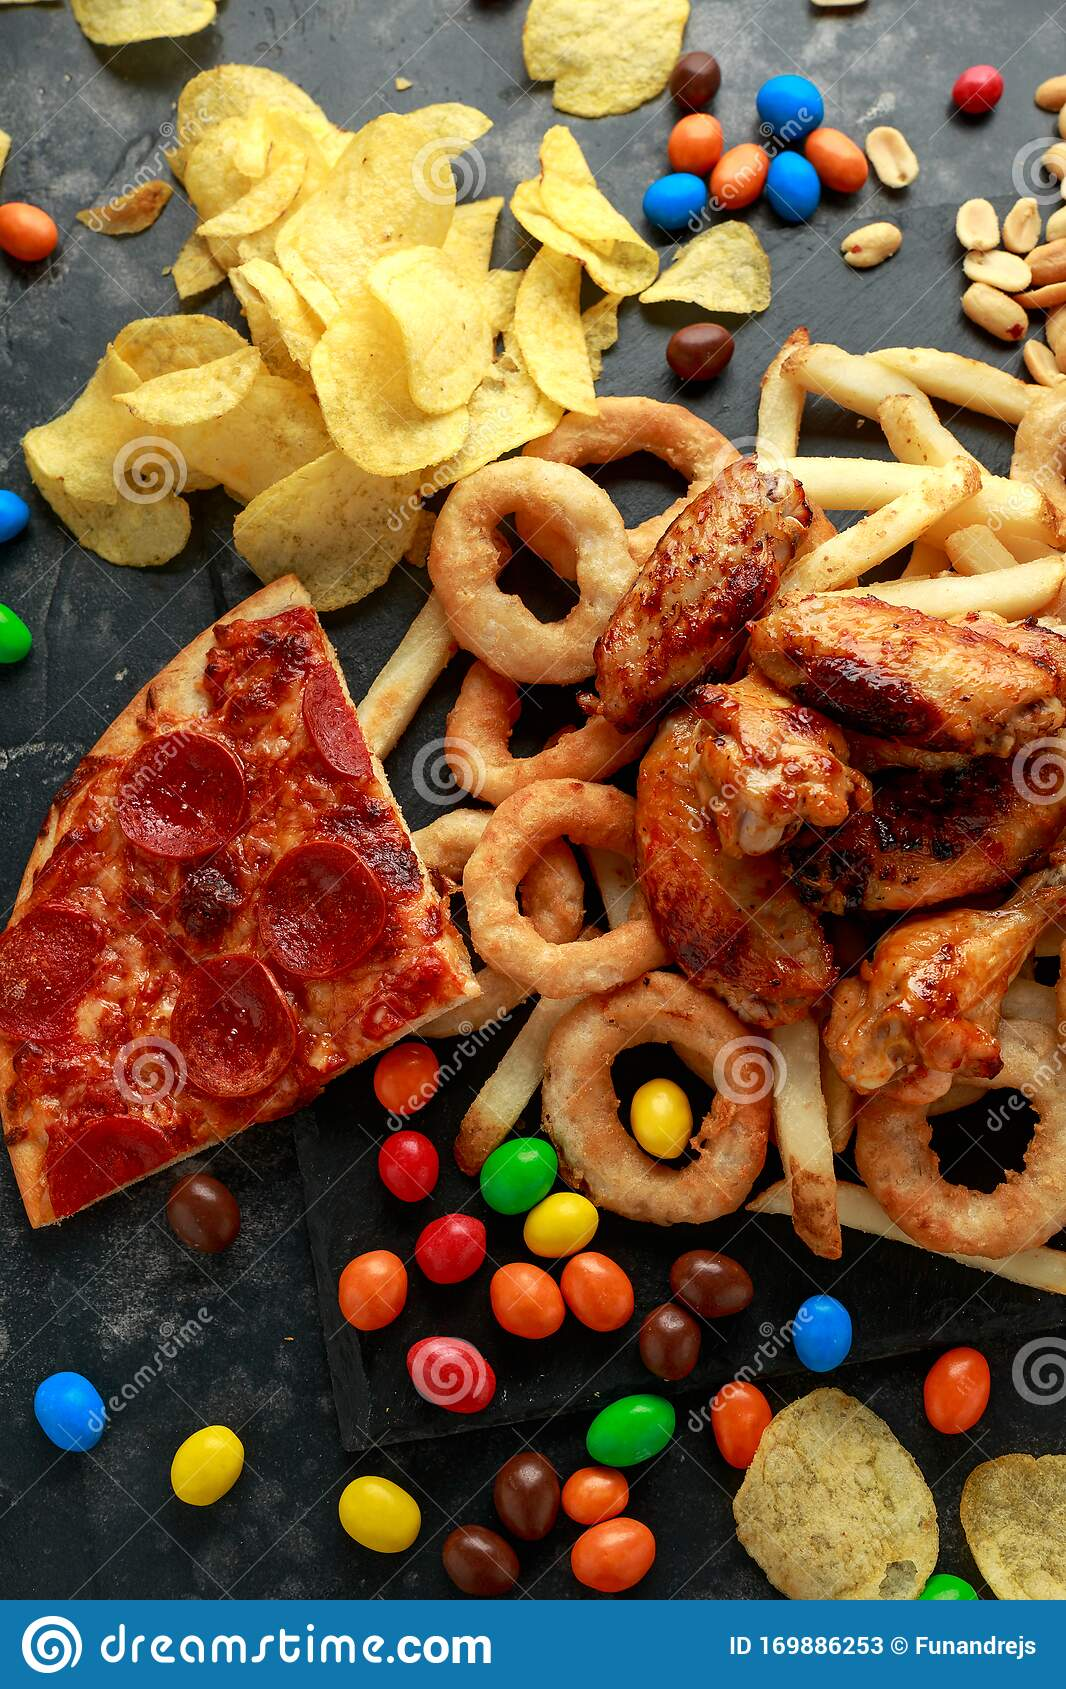 Unhealthy, Fast Food Concept. Onion Rings, Pizza, French ...